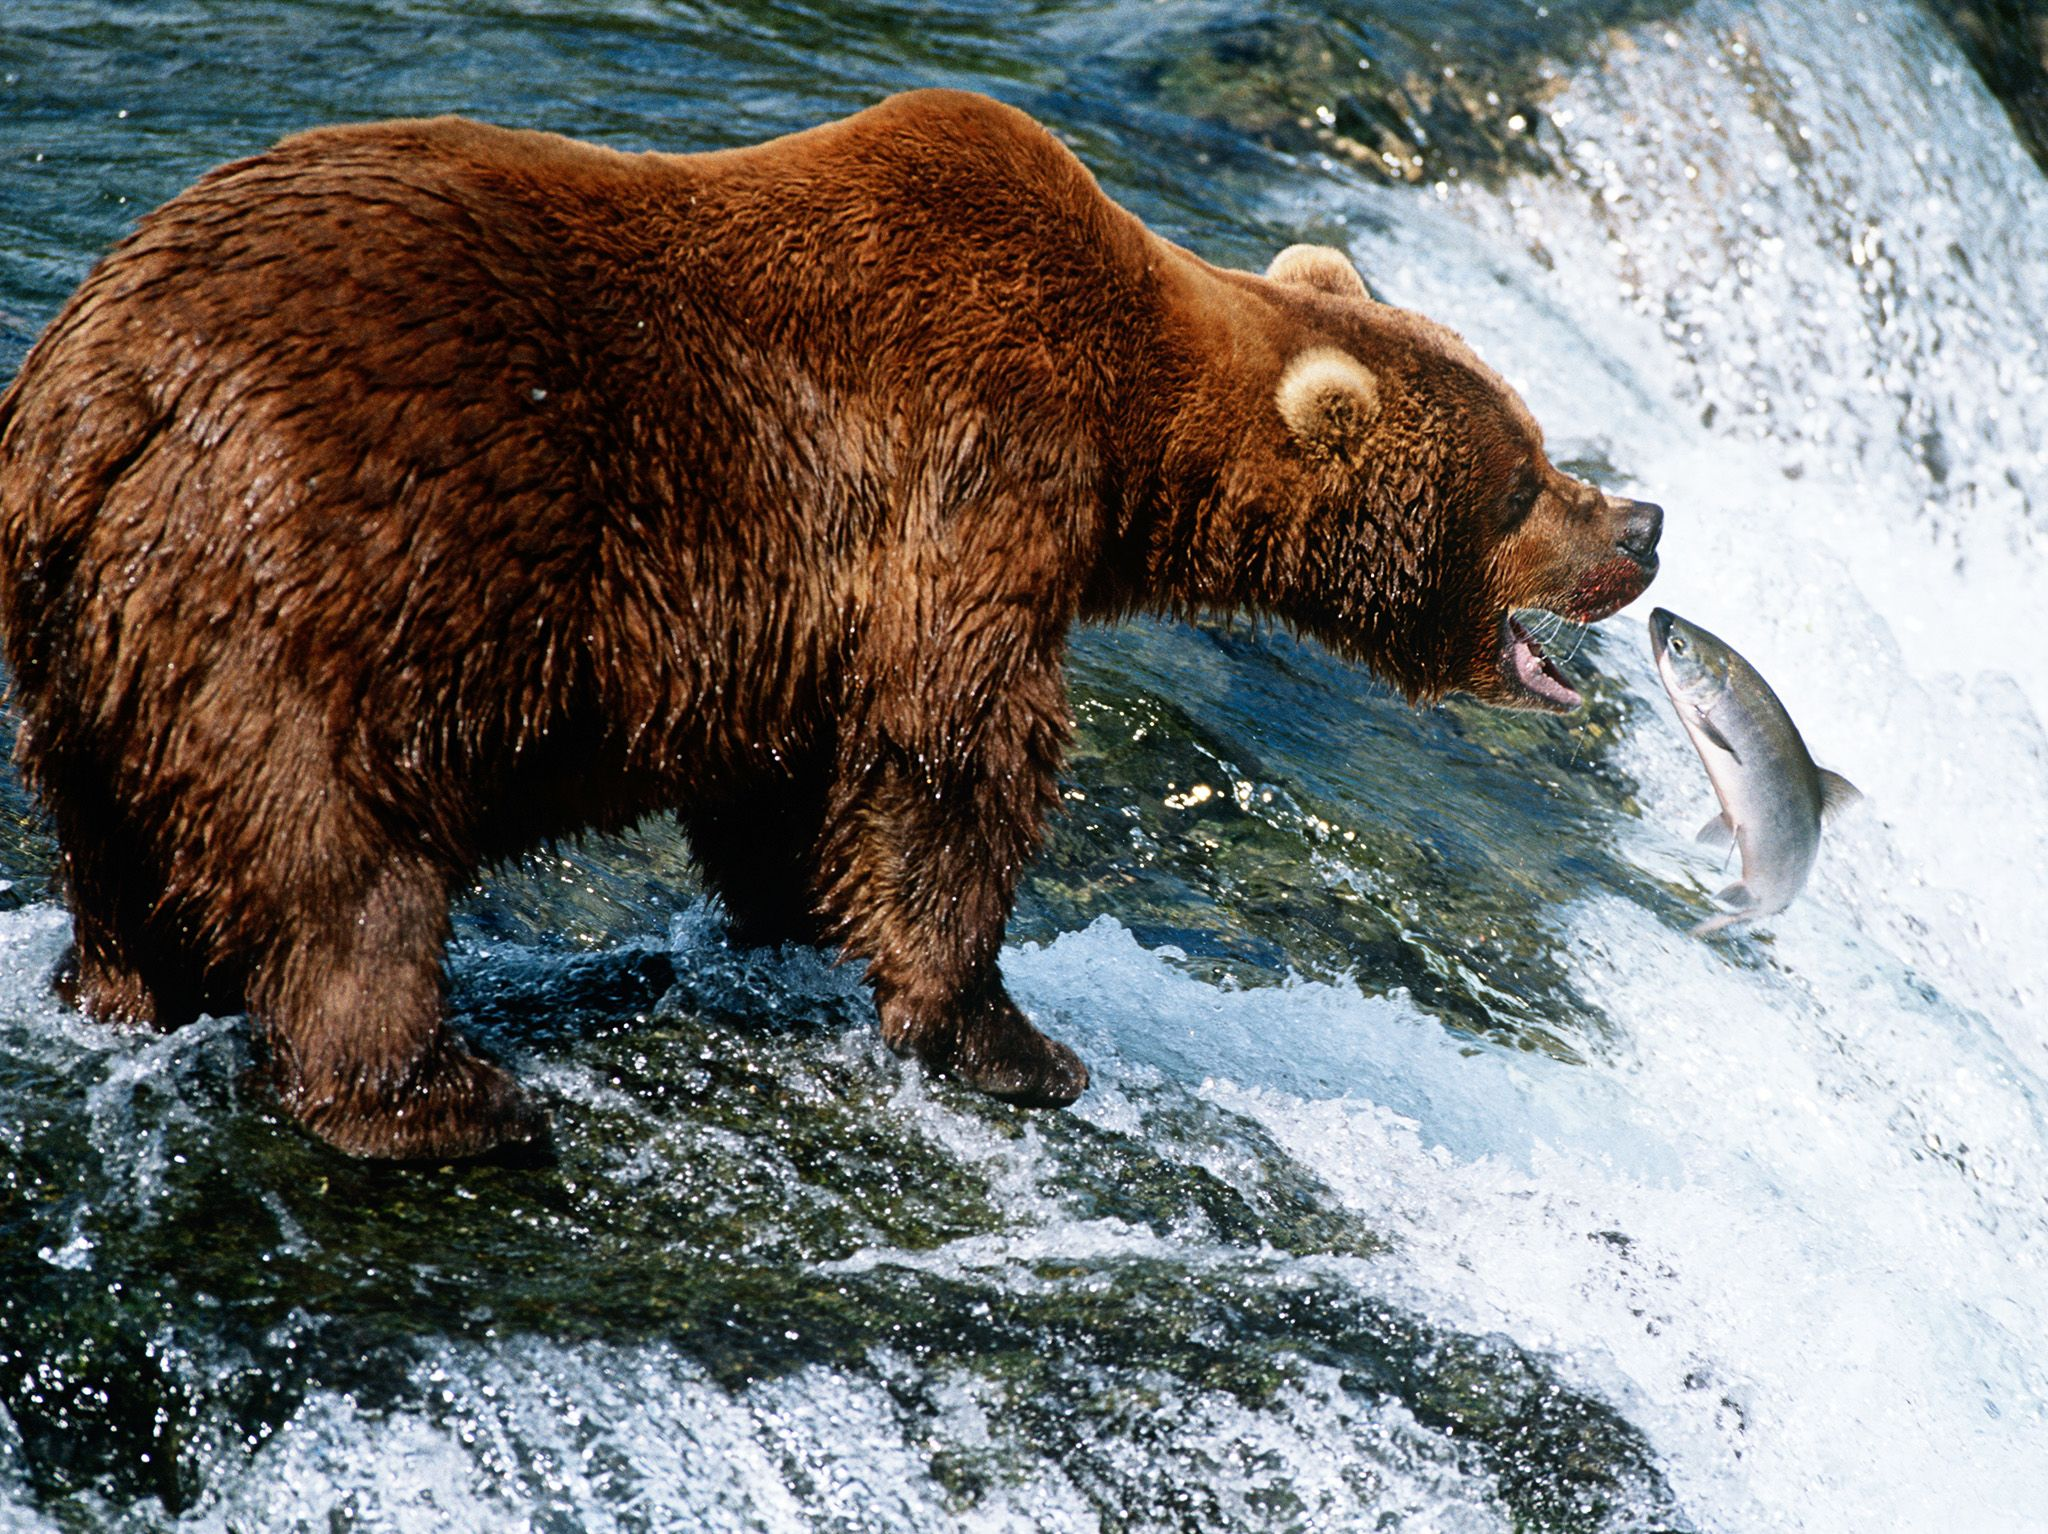 USA, Alaska, Katmai National Park, Brown Bear catching Salmon in river, side view. This image is... [Photo of the day - December 2019]